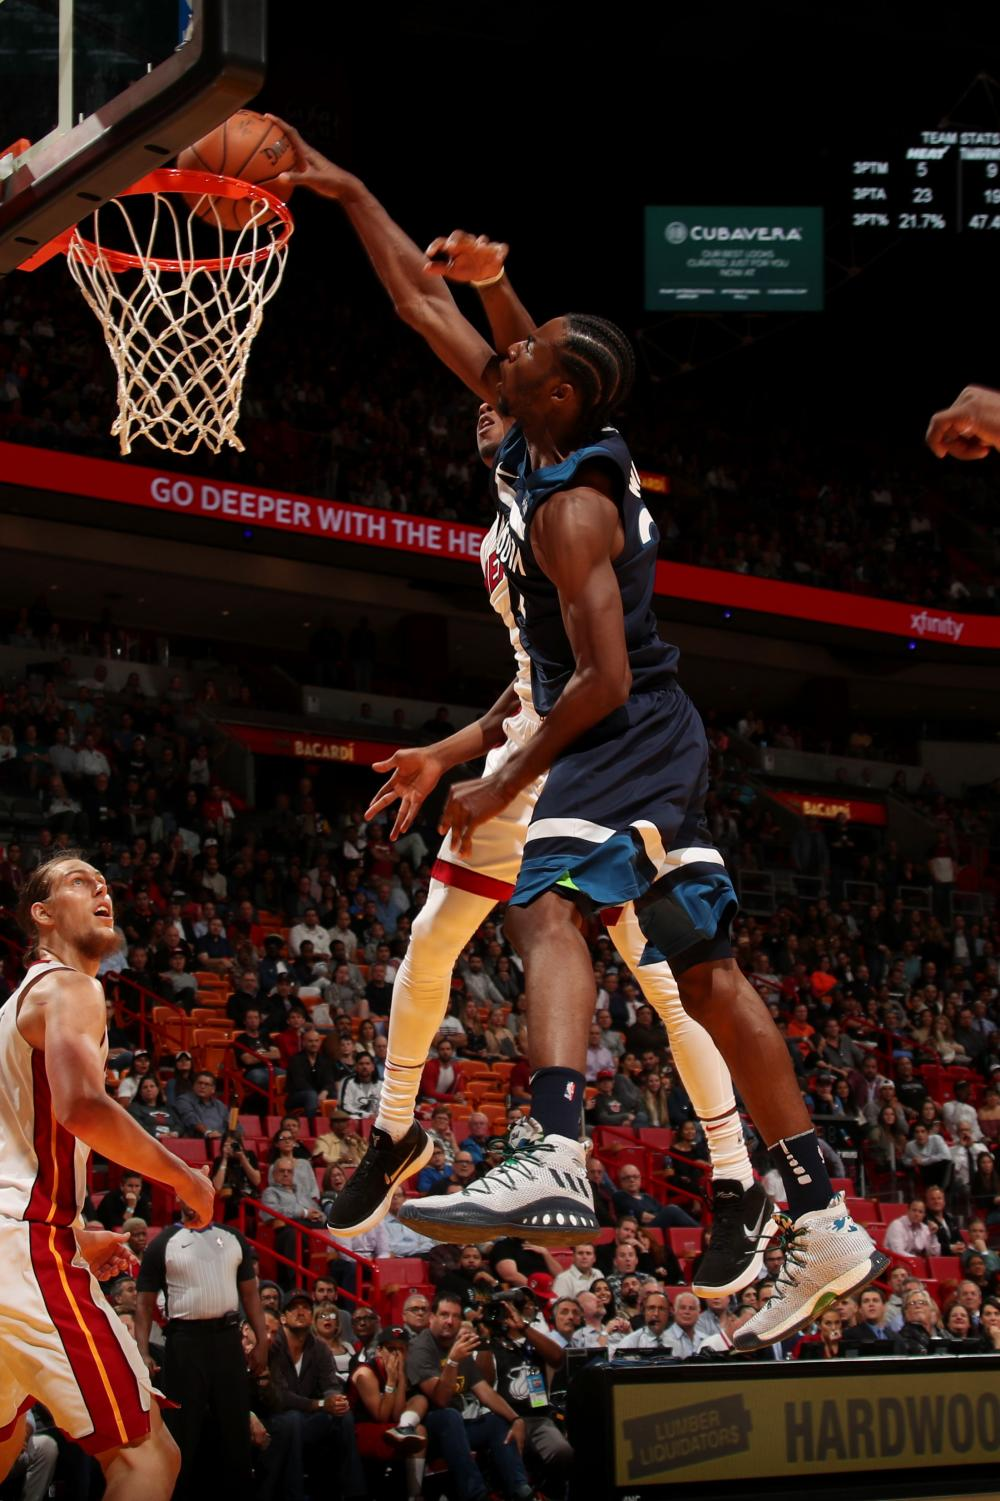 Wolves guard Andrew Wiggins dunks on Miami's Josh Richardson. (Issac Baldizon/NBAE/Getty Images)